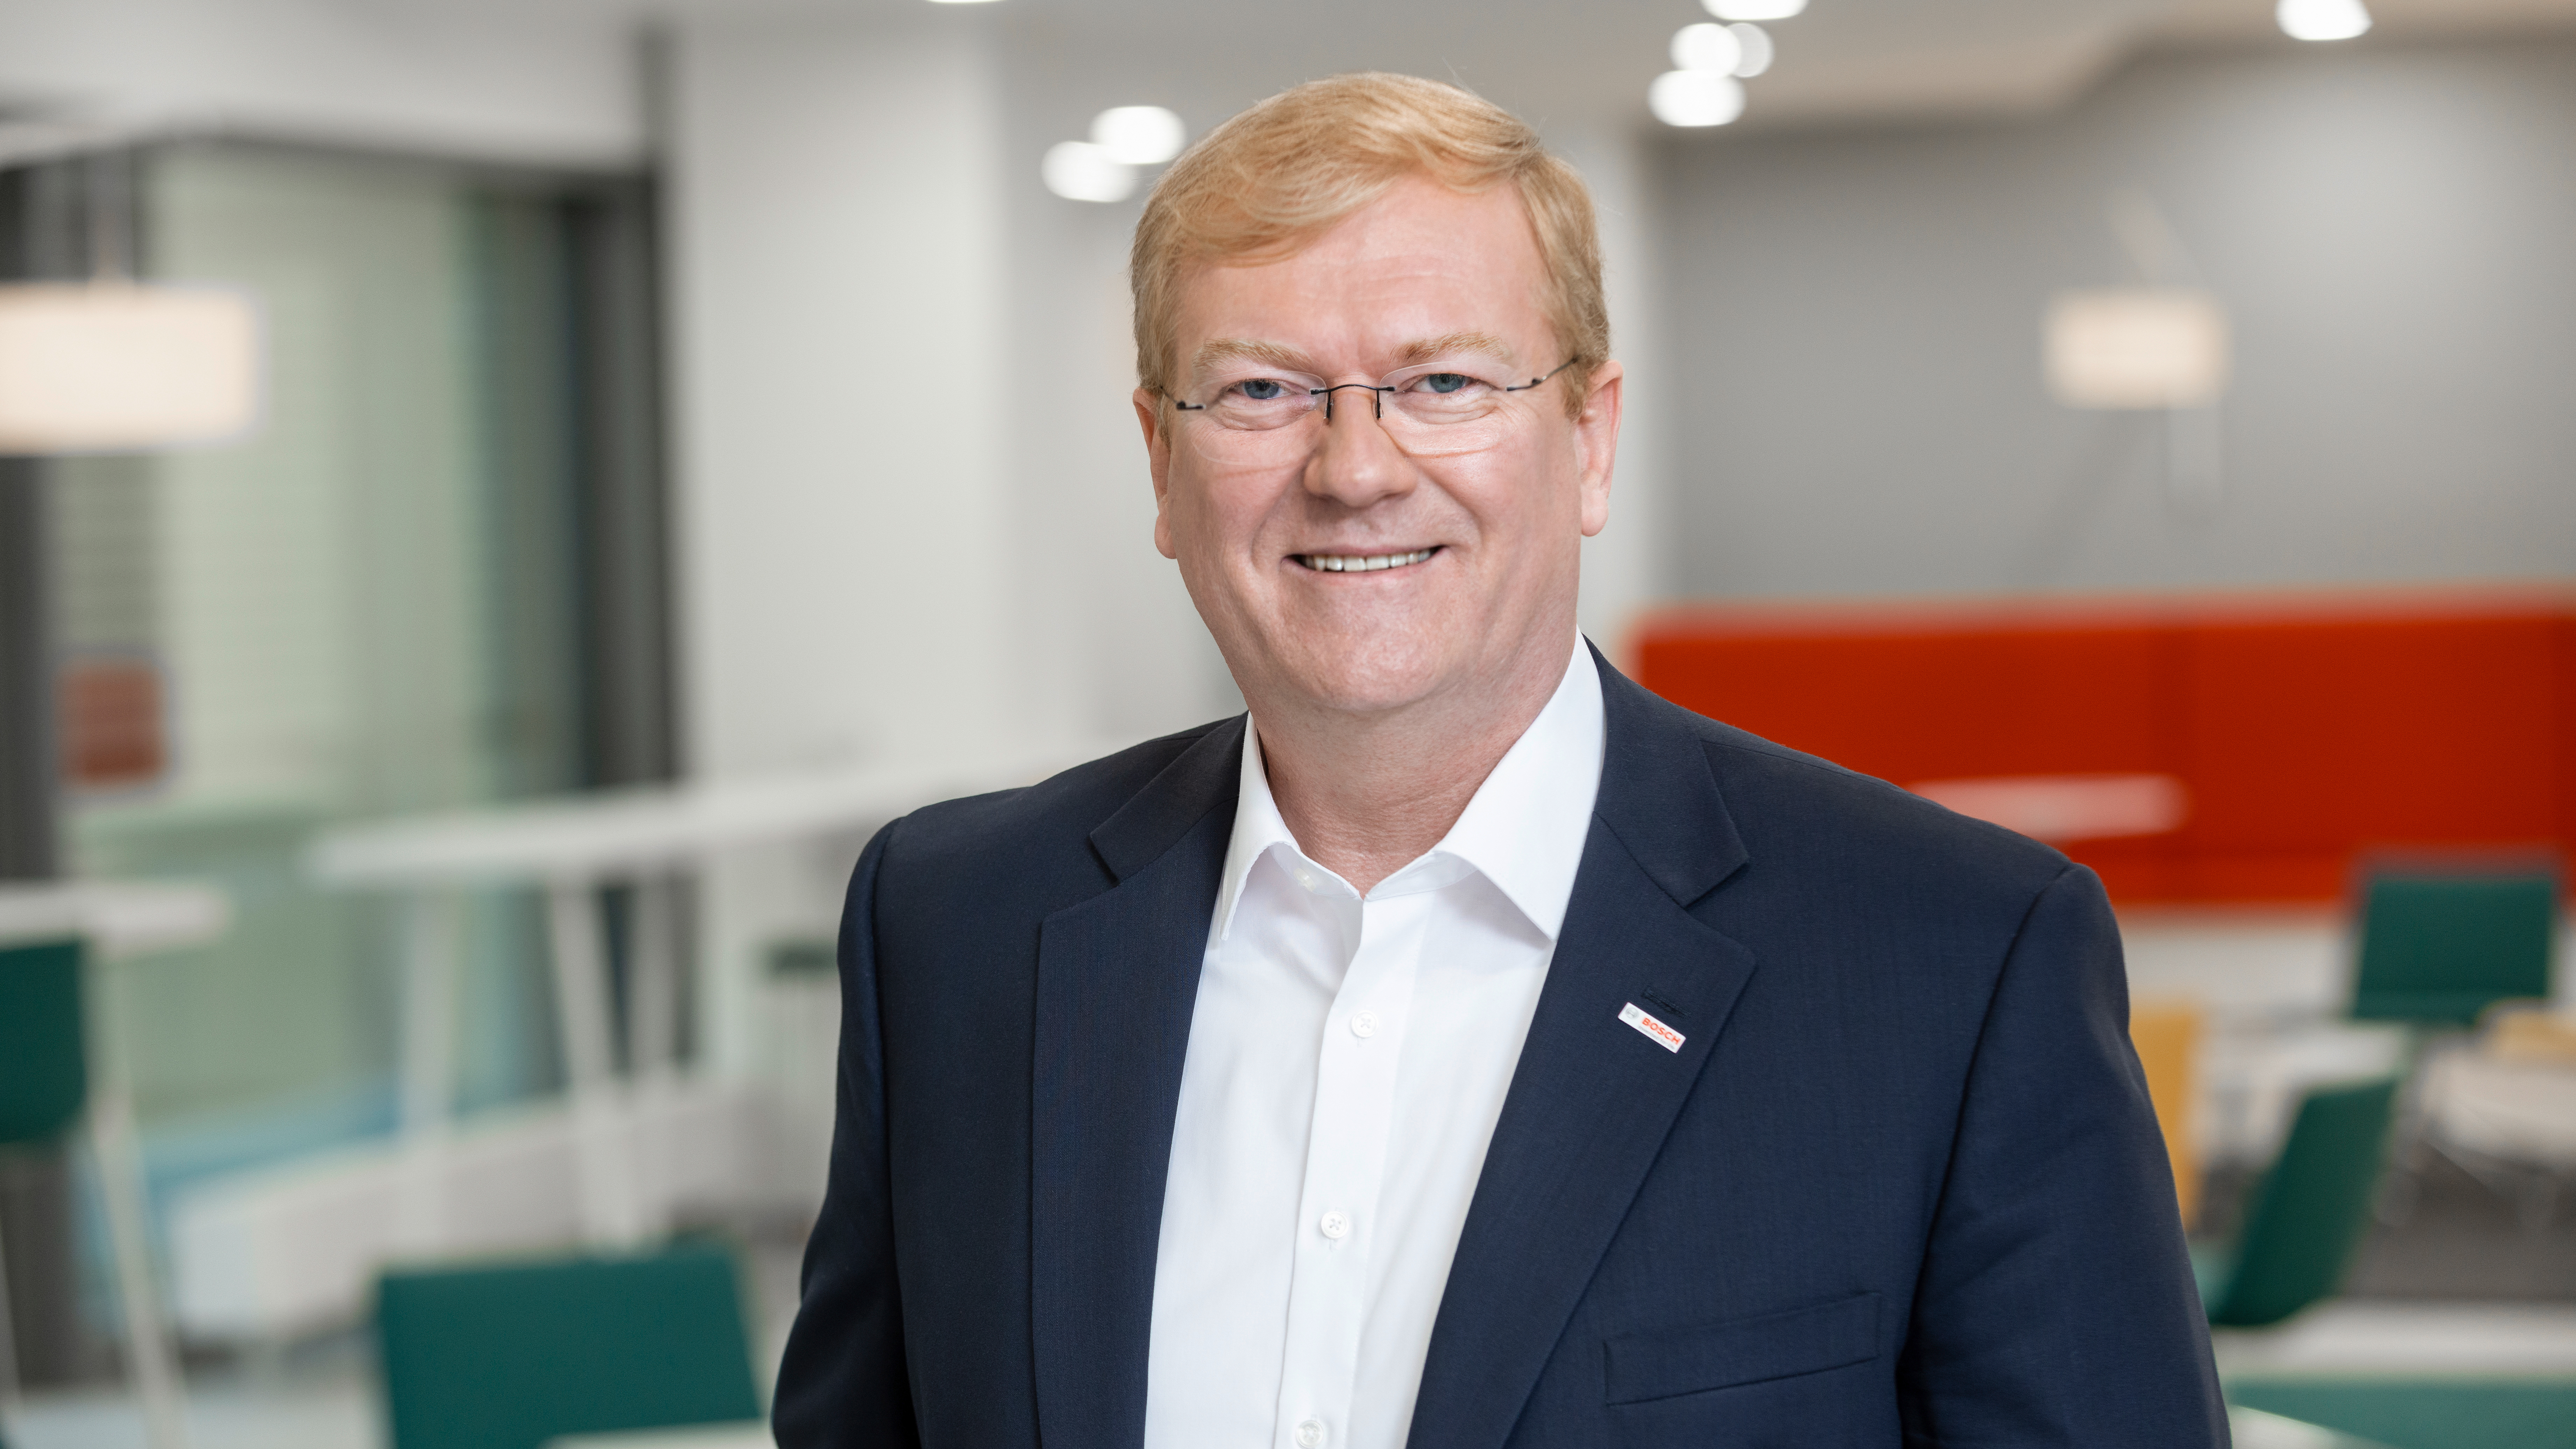 Dr. Stefan Hartung, member of the board  of management of Robert Bosch GmbH and chairman of the Mobility Solutions business sector, on electromobility at Bosch